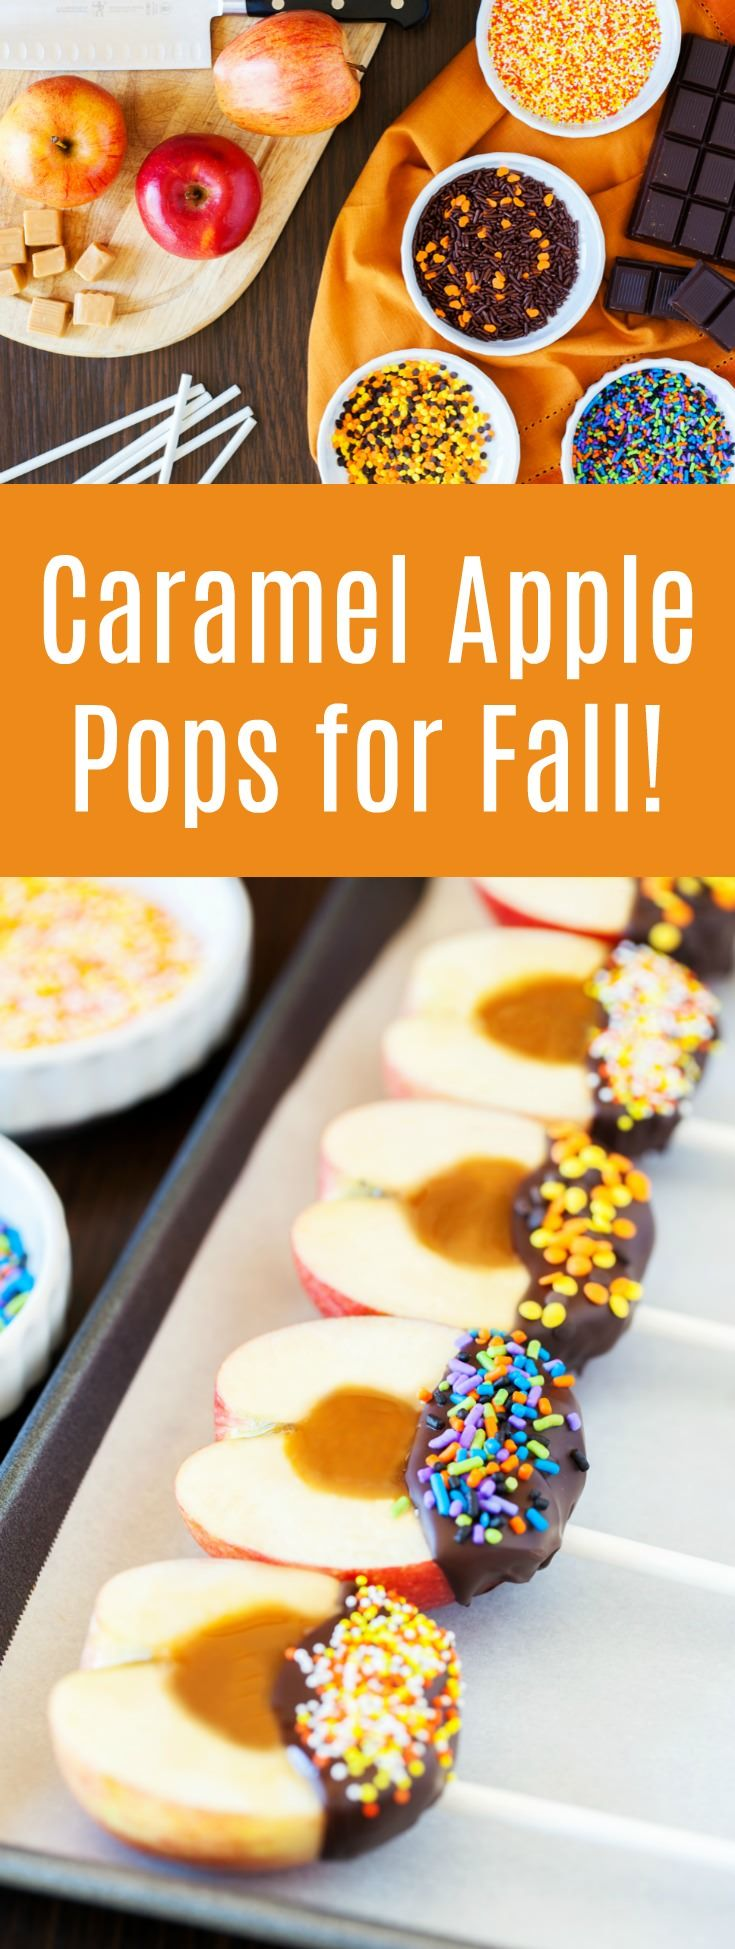 Learn how to make delicious candy apples on a stick. These caramel apple pops are perfect for fall and you can customize with the toppings of your choice! via @diy_candy